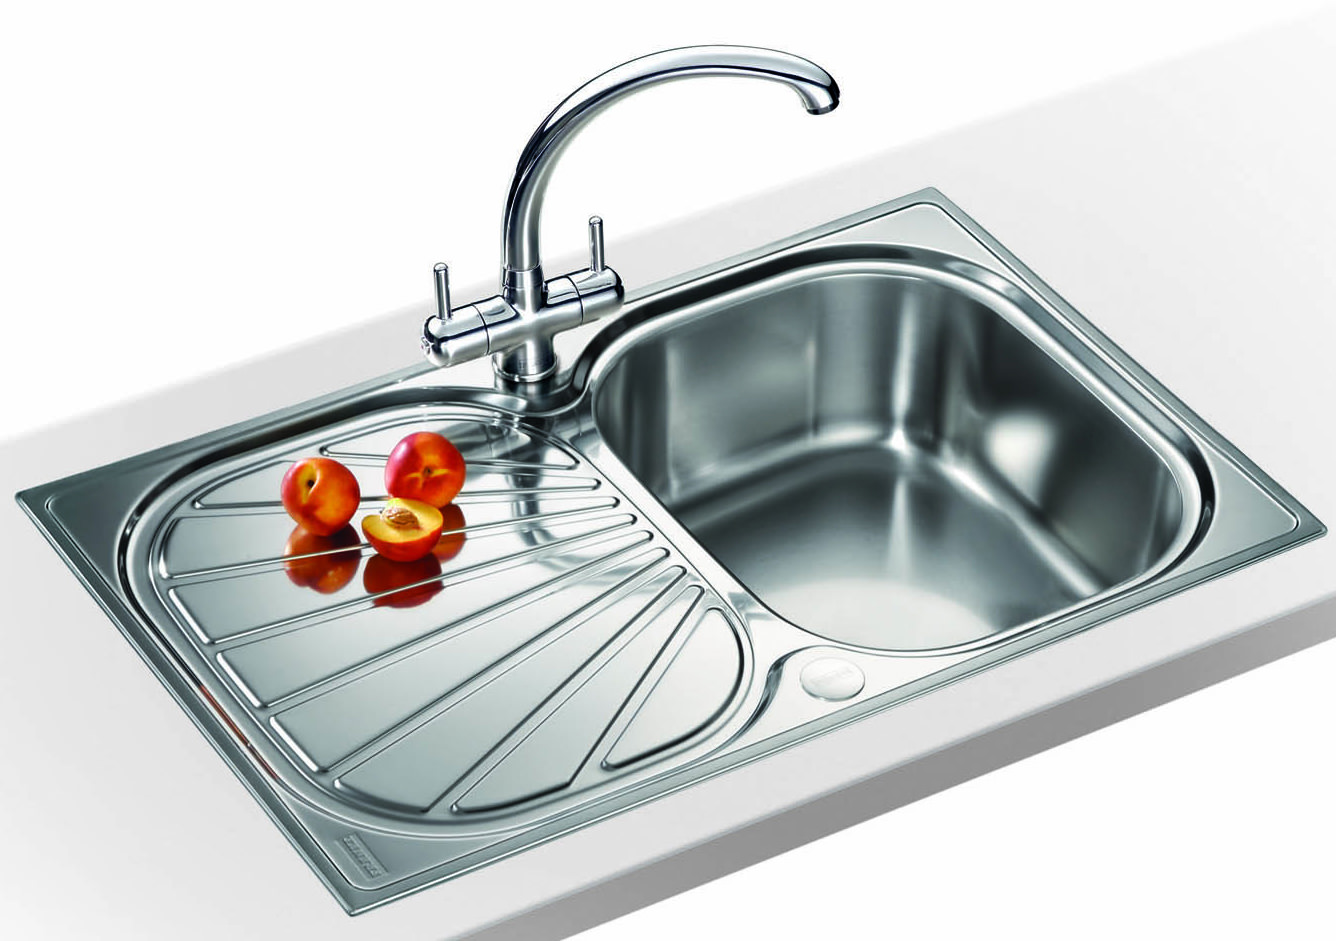 Franke Sinks And Taps : Franke Erica Propack EUX 611 78 Stainless Steel Kitchen Sink And Tap ...